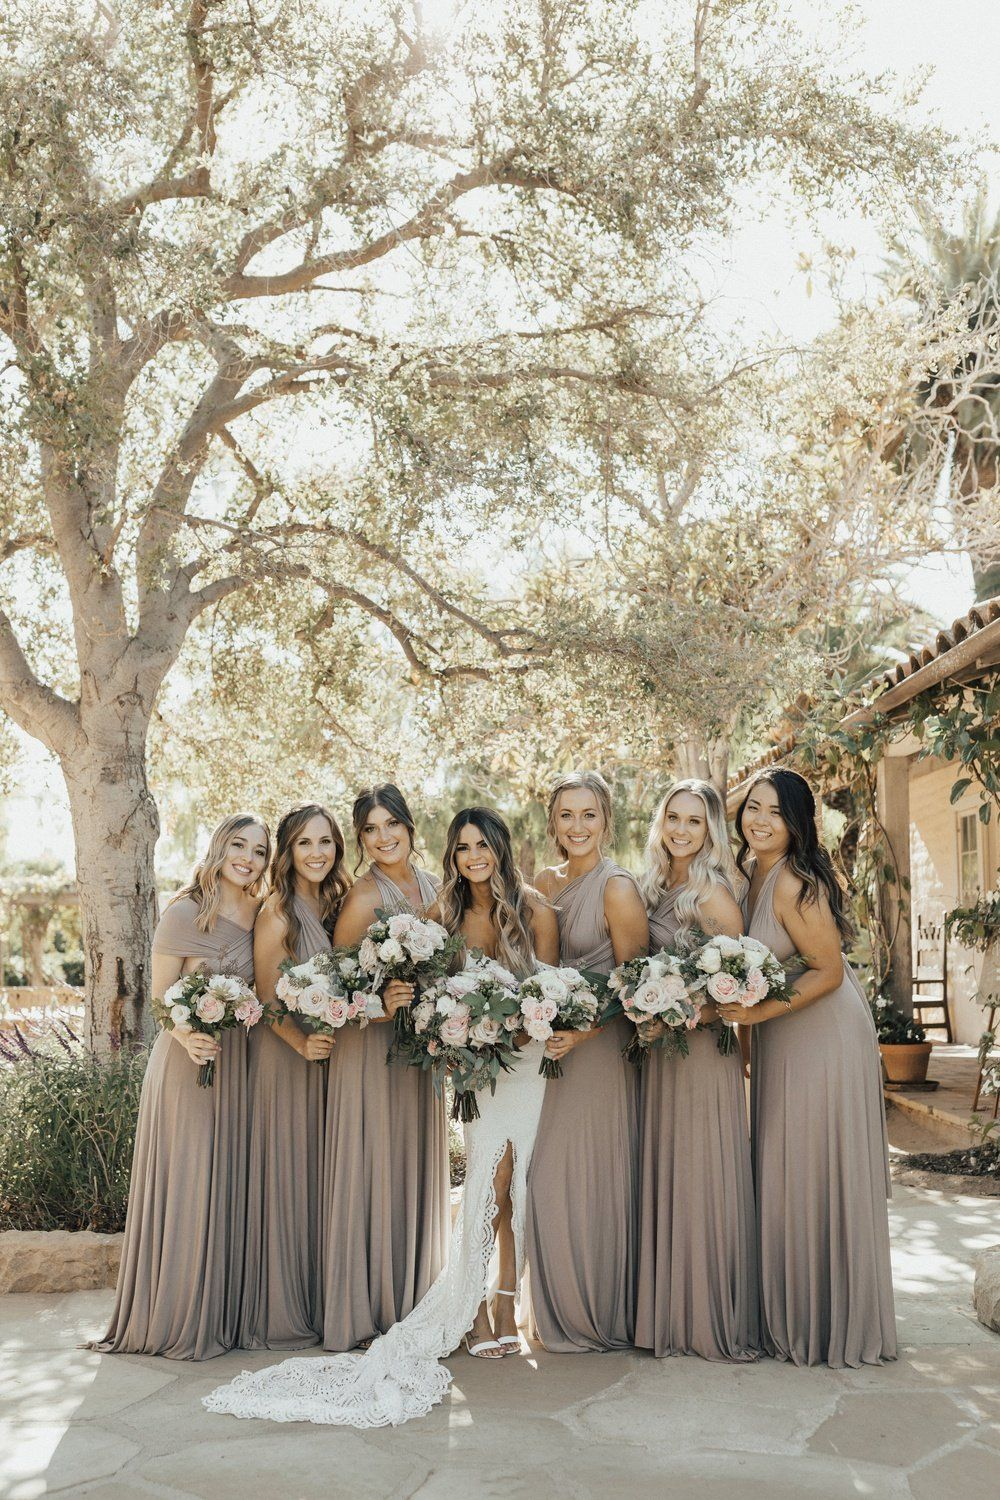 This Wedding Is Proof That Golden Hour Is The Best Time To Get Married Ruffled Neutral Bridesmaid Dresses Indie Wedding Dress Beige Bridesmaid Dress